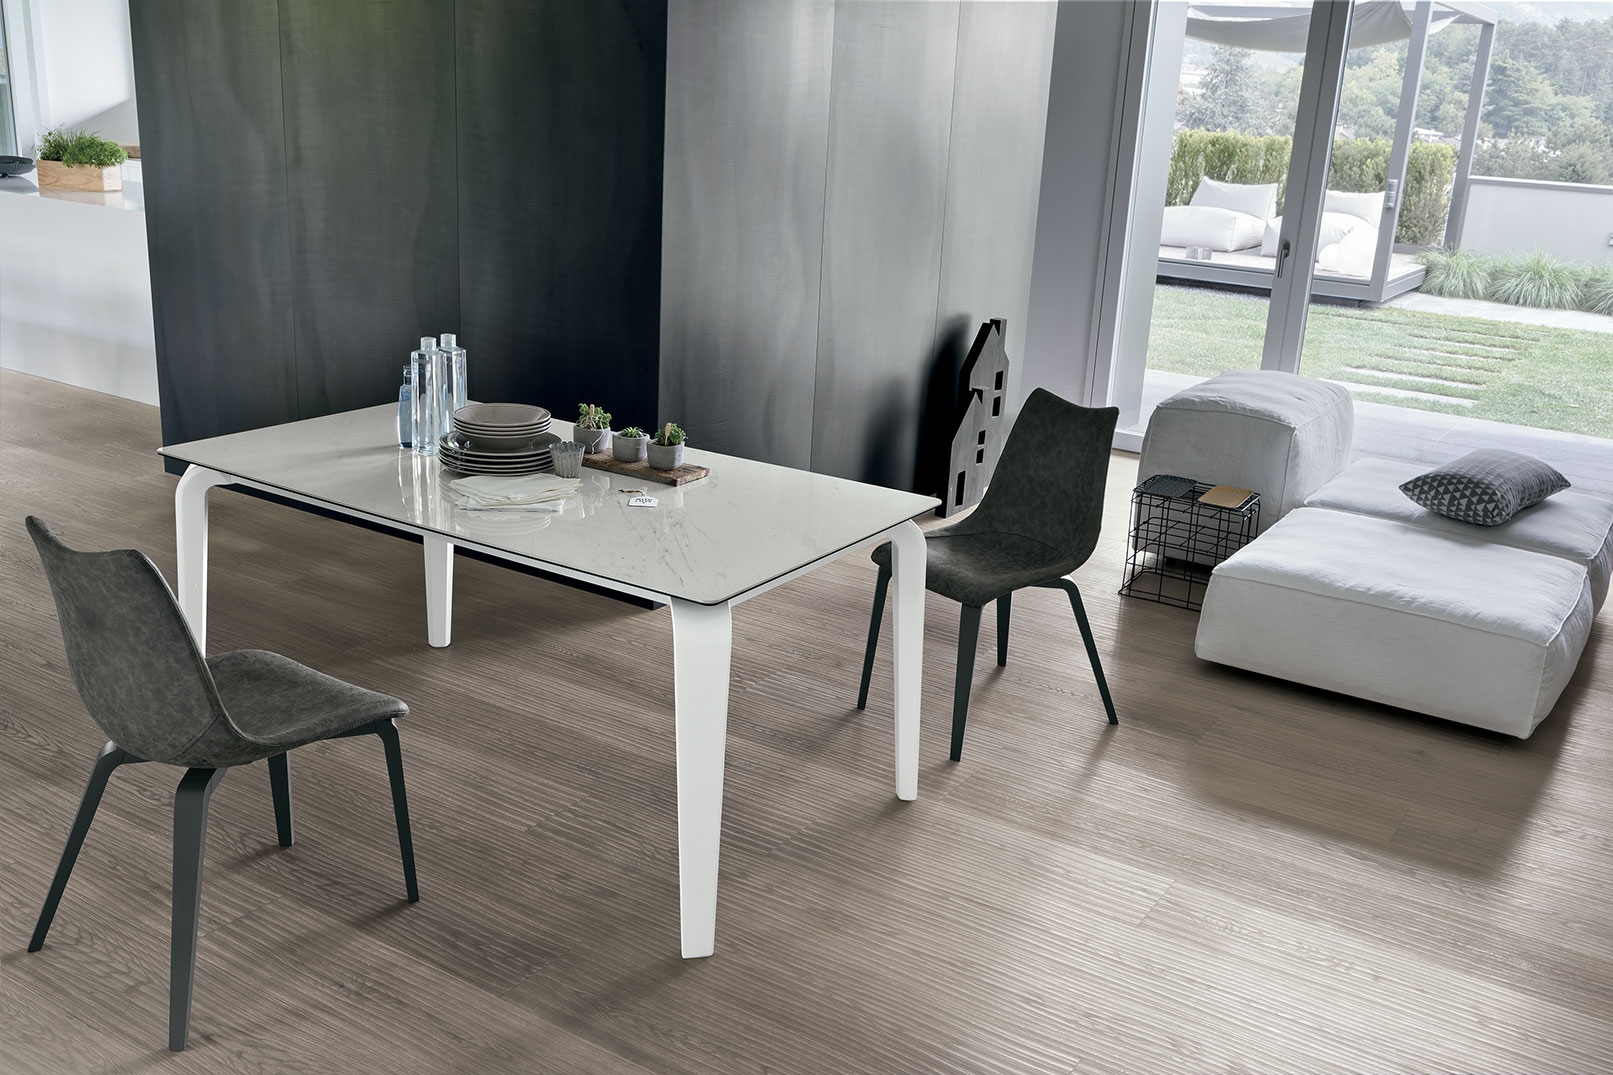 MAGELLANO Table • Target Point